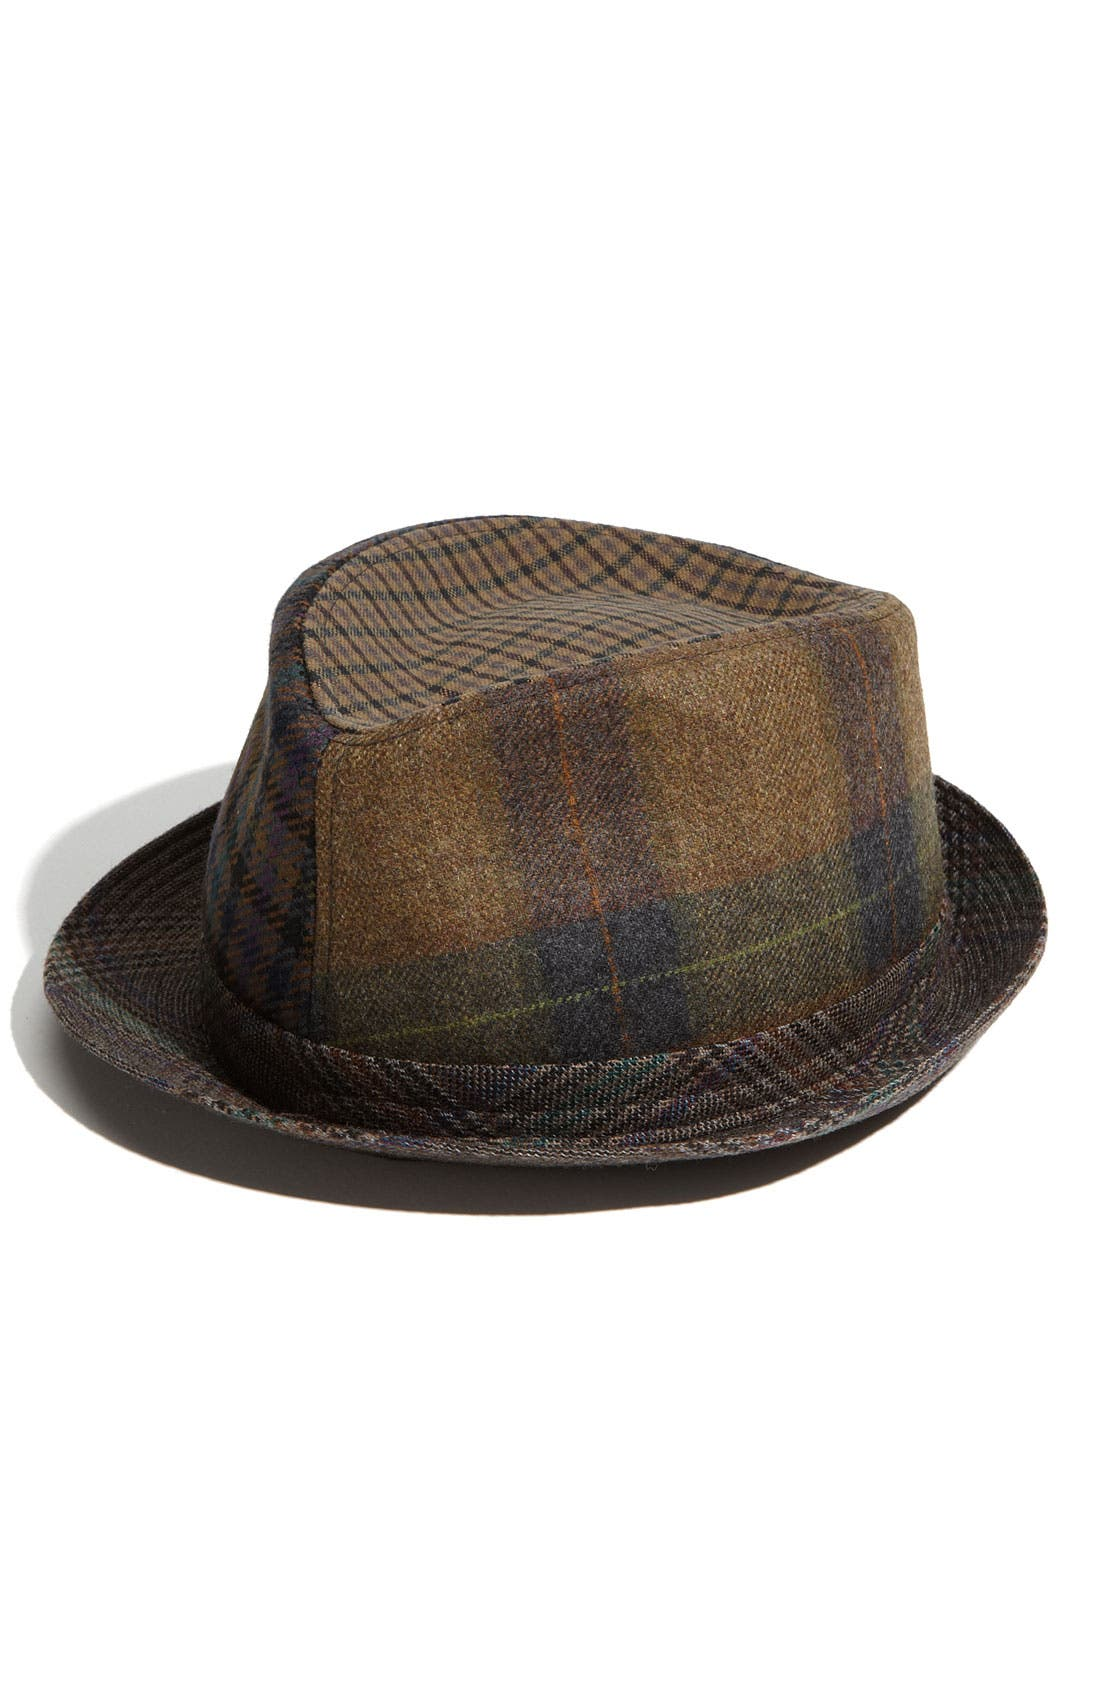 Alternate Image 1 Selected - Etro Mixed Print Wool Hat